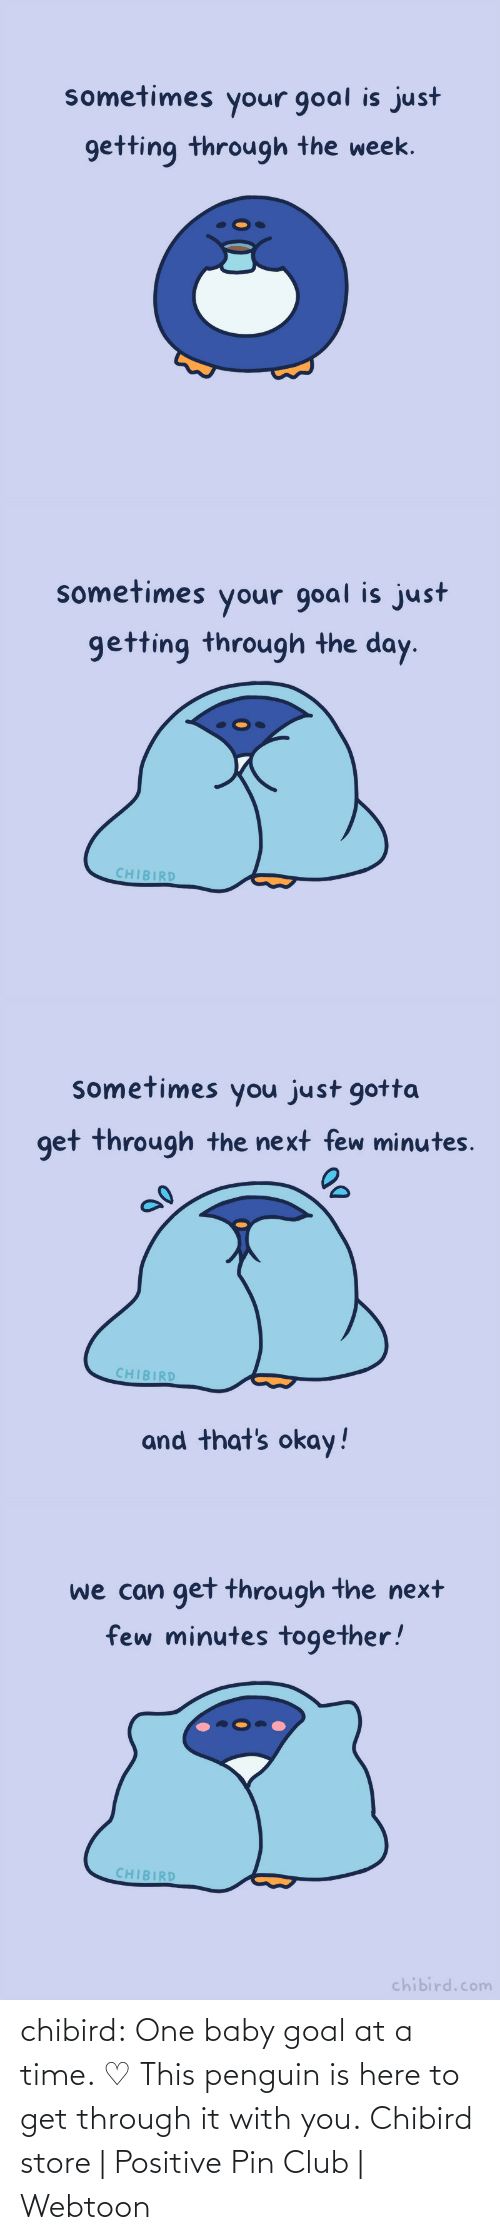 Penguin: chibird:  One baby goal at a time. ♡ This penguin is here to get through it with you.  Chibird store | Positive Pin Club | Webtoon